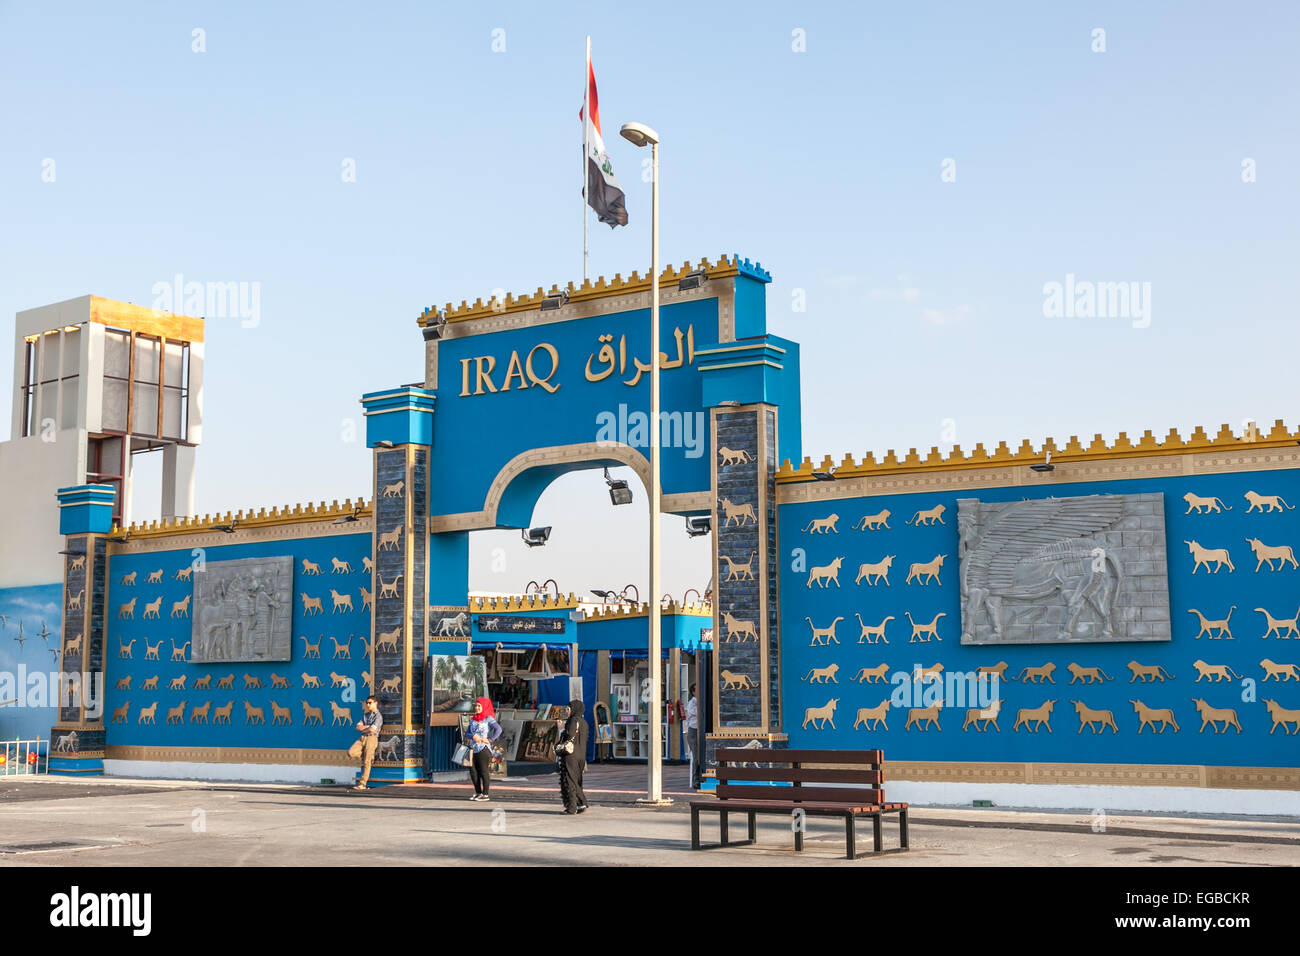 Iraq Pavilion at the Global Village in Dubai - Stock Image